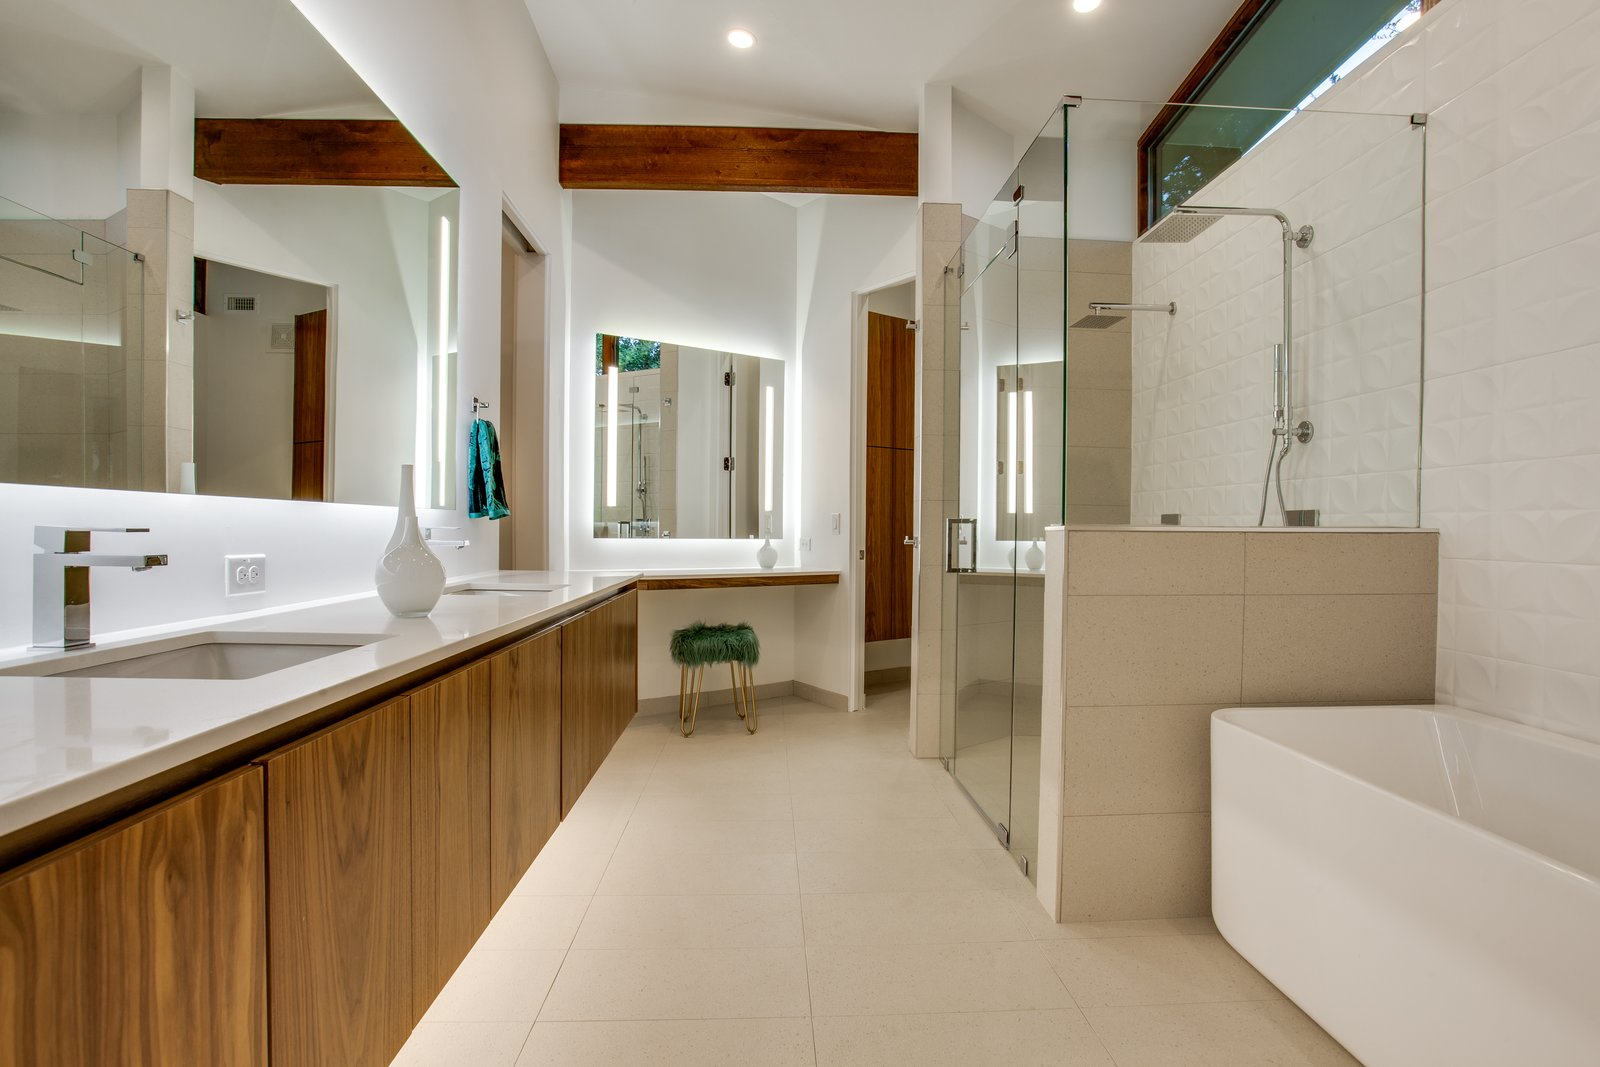 Bath Room, Engineered Quartz Counter, Freestanding Tub, Enclosed Shower, Ceiling Lighting, Recessed Lighting, Accent Lighting, Ceramic Tile Wall, Ceramic Tile Floor, Wall Lighting, and Two Piece Toilet Master bath after  1963 Post and Beam Mid Century Modern by Tavis Westbrook